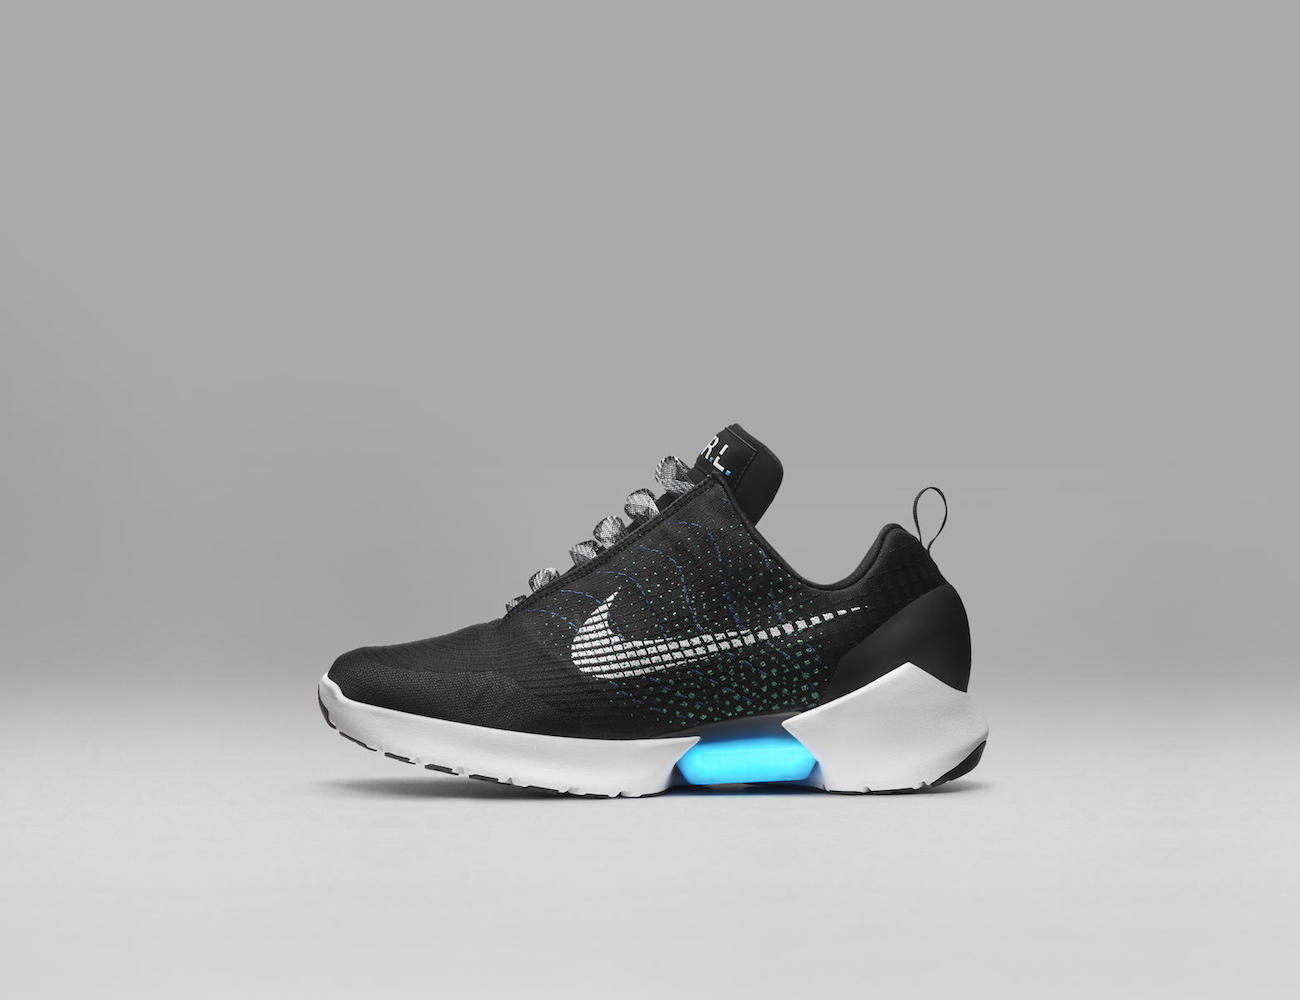 hyperadapt-self-tying-sneakers-by-nike-04